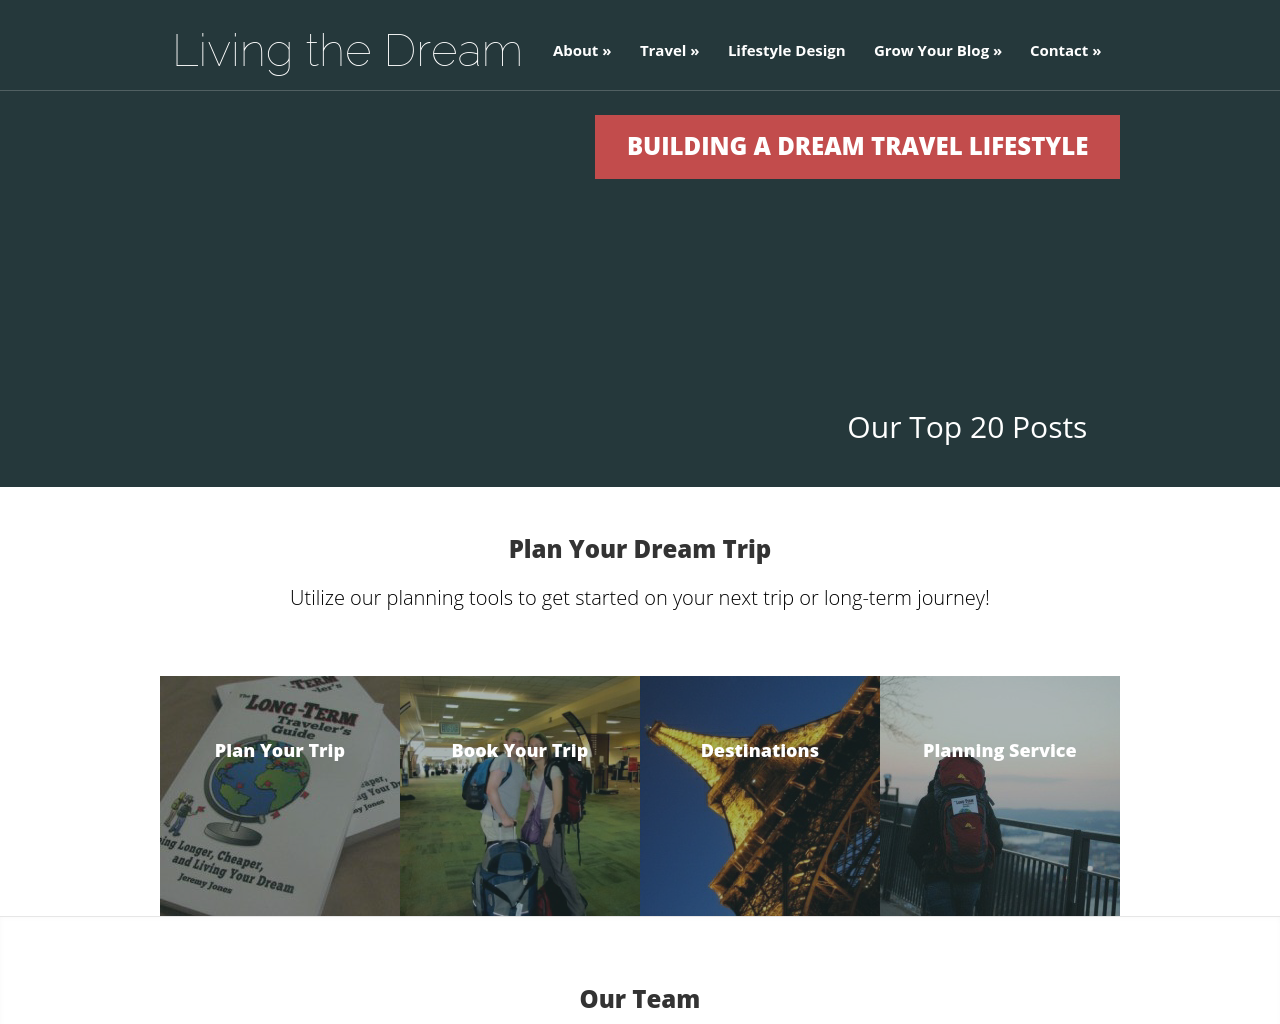 LivingtheDream-Advertising-Reviews-Pricing